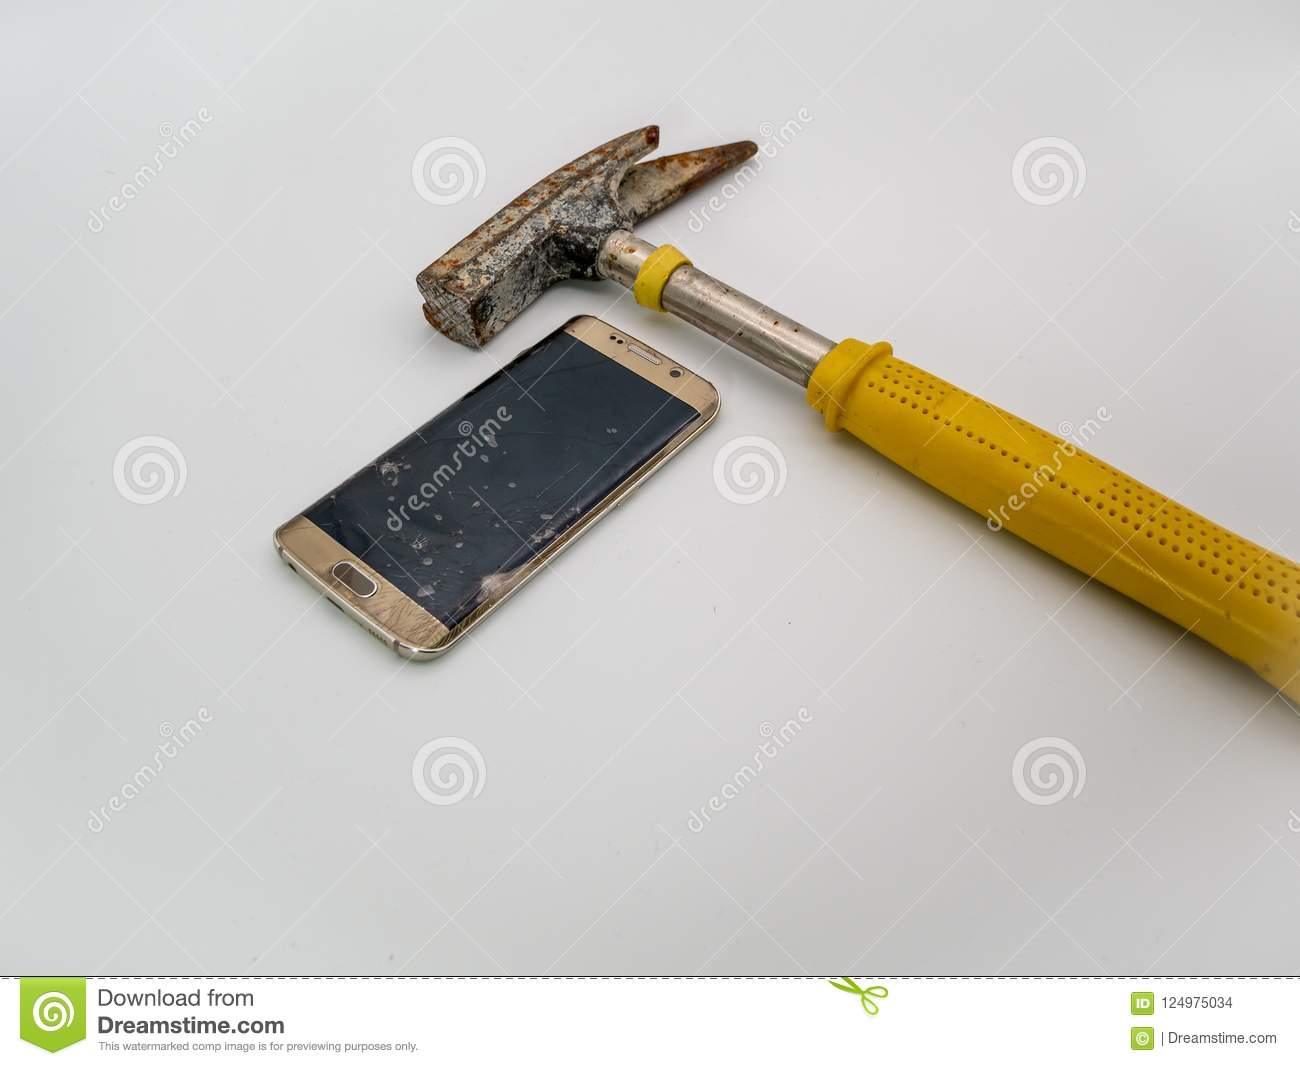 Damaged smartphone disply with hammer and white background